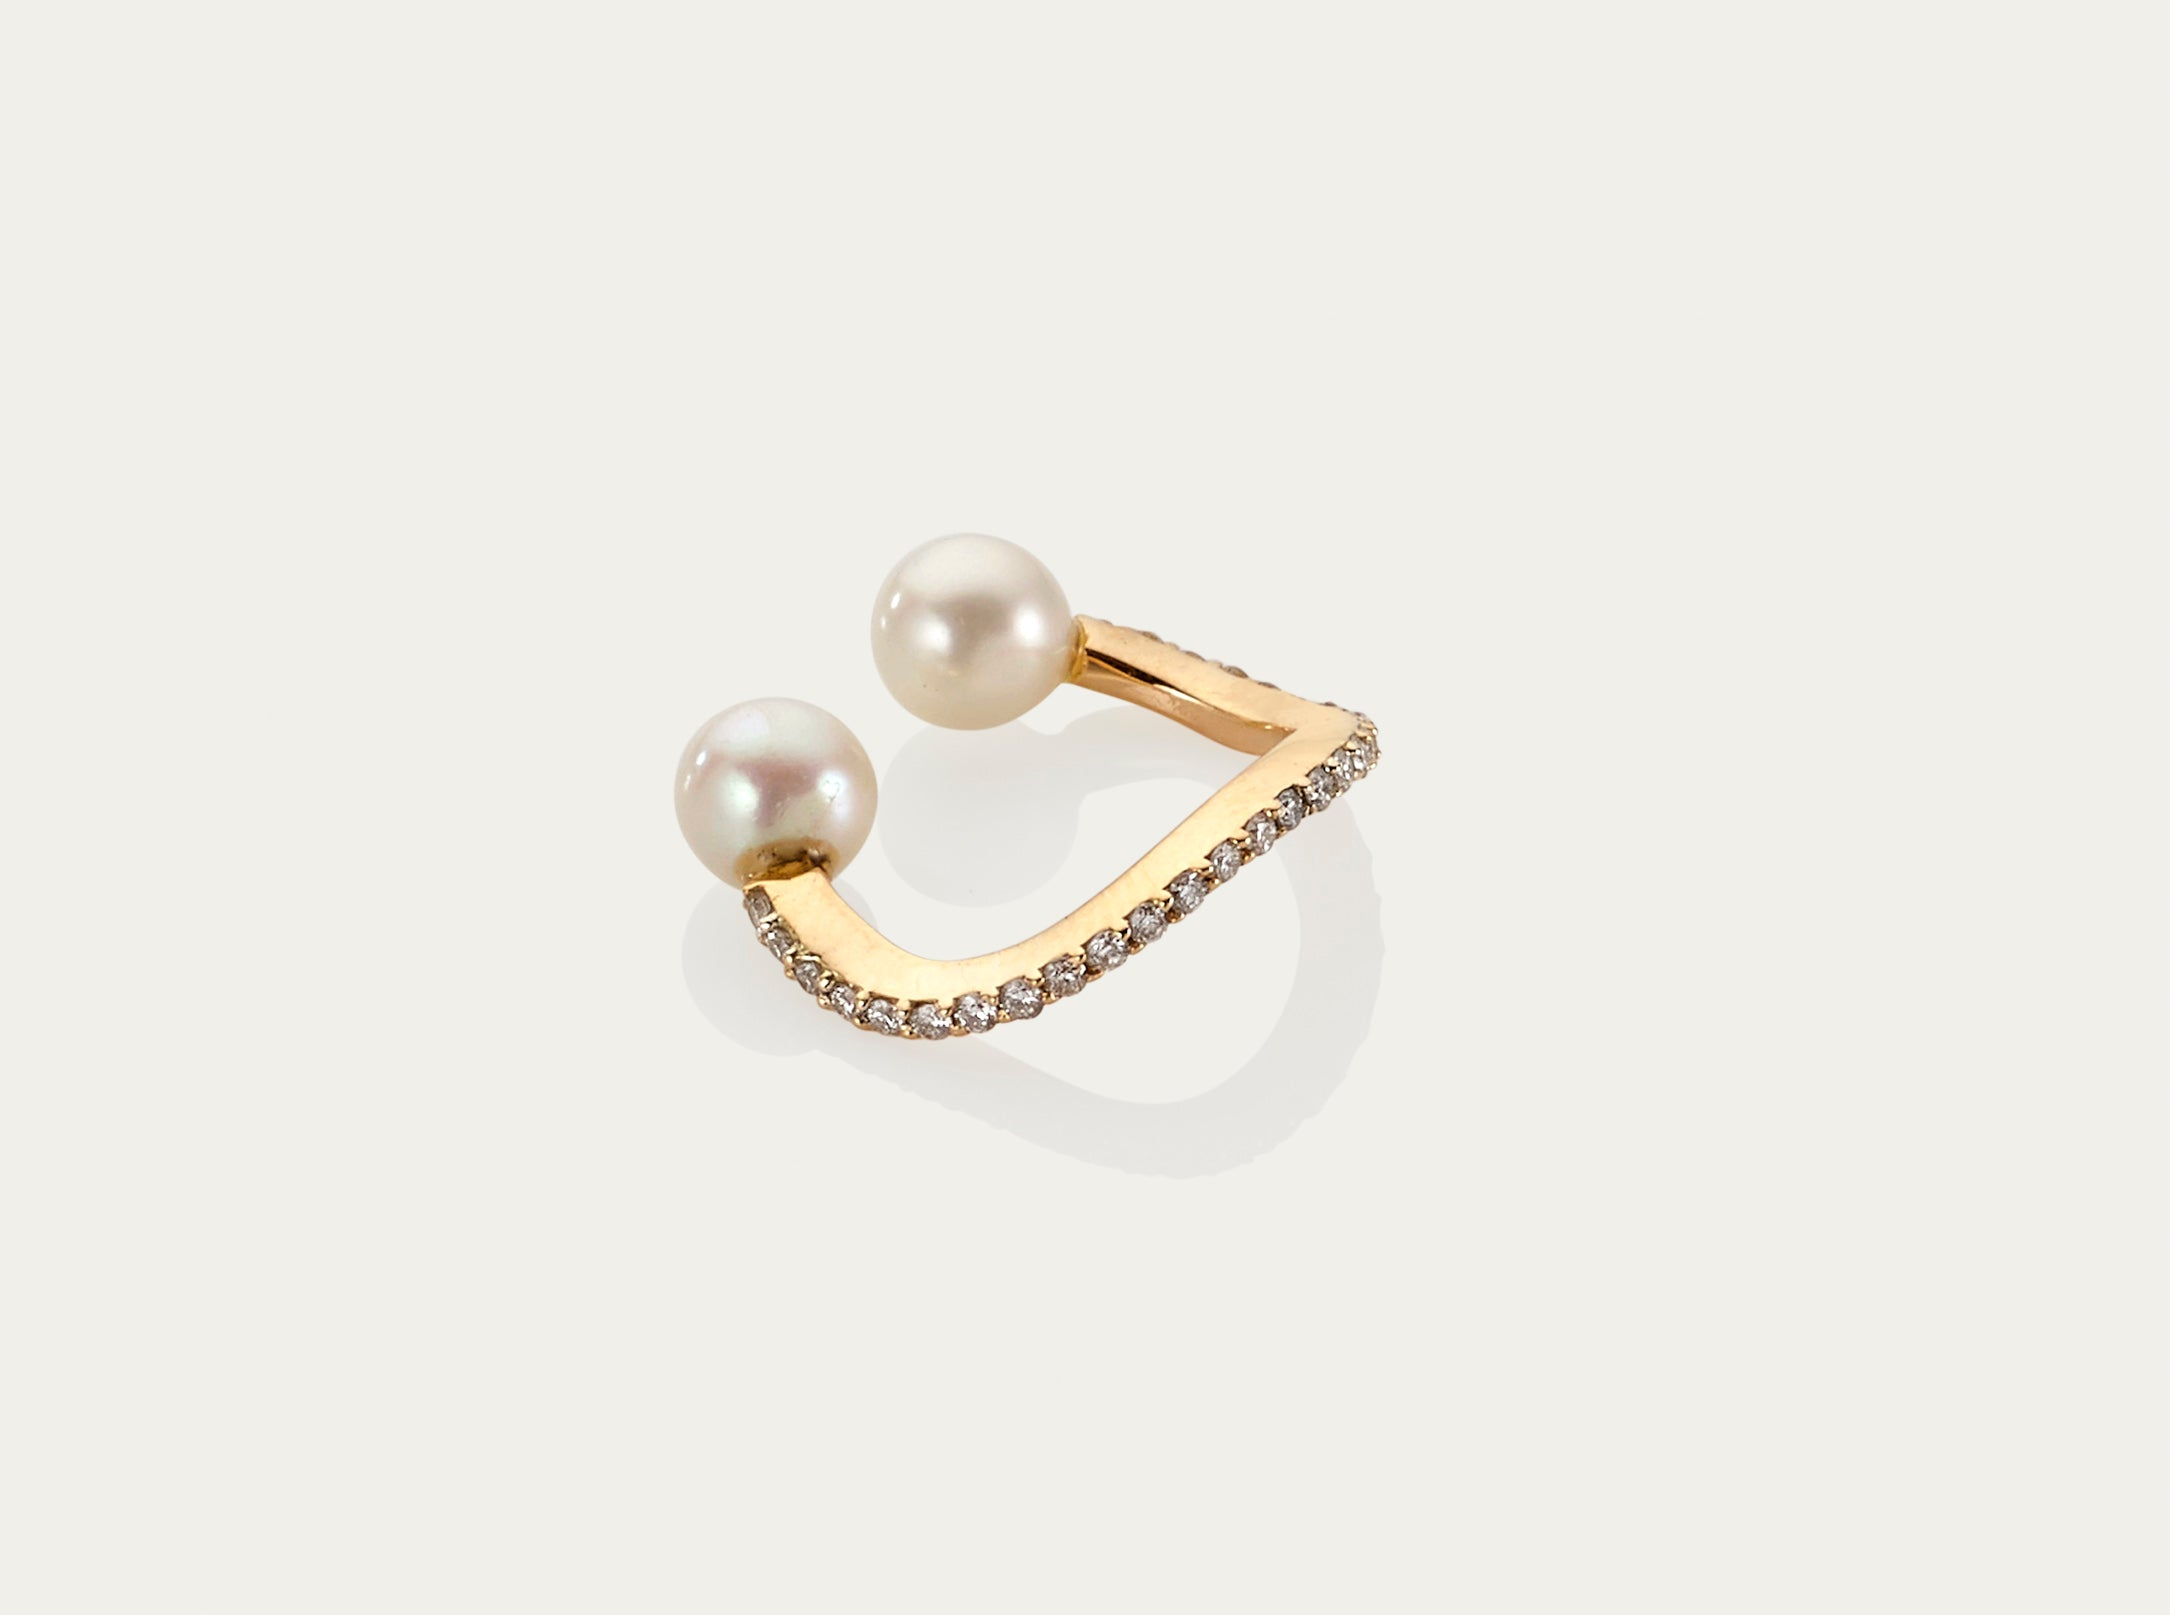 Pearl and Diamond Earcuff set in 18K yellow gold